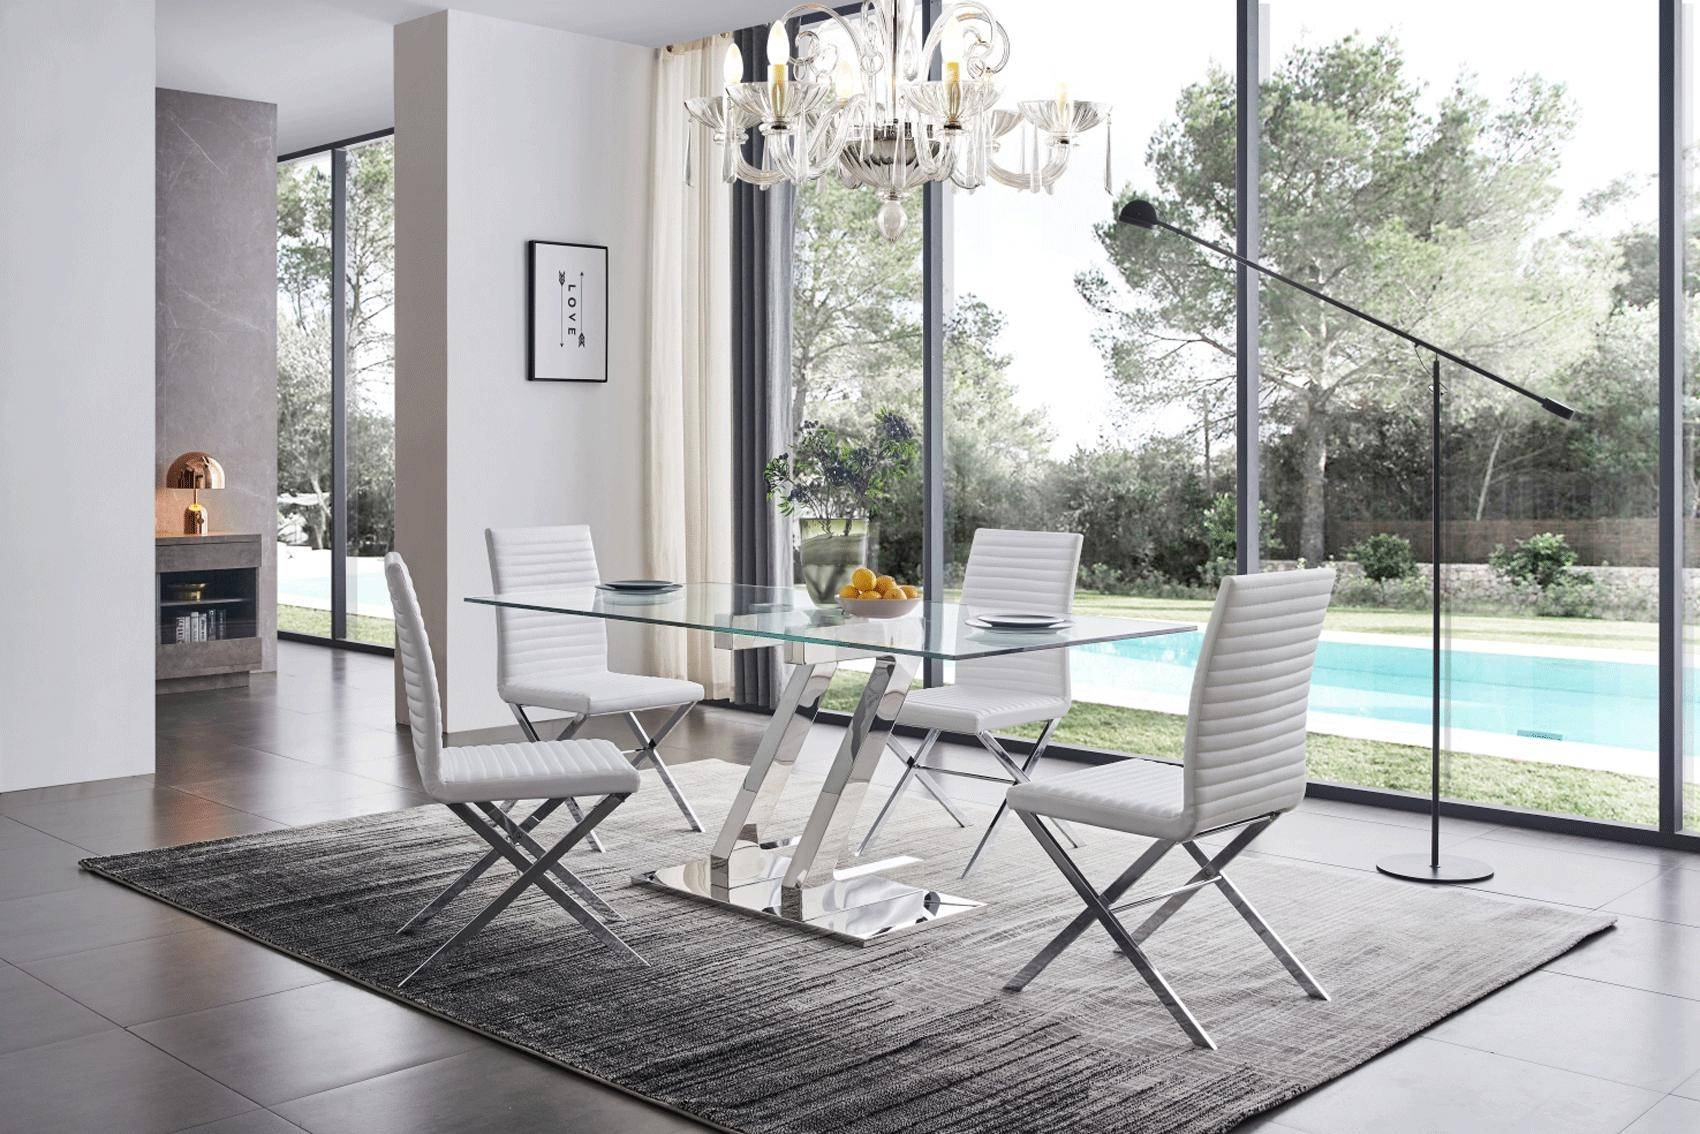 Tempered Glass Dining Table 180 Set W 85 White Chairs Modern 7pcs Esf Zz Zz180 85 Set 7